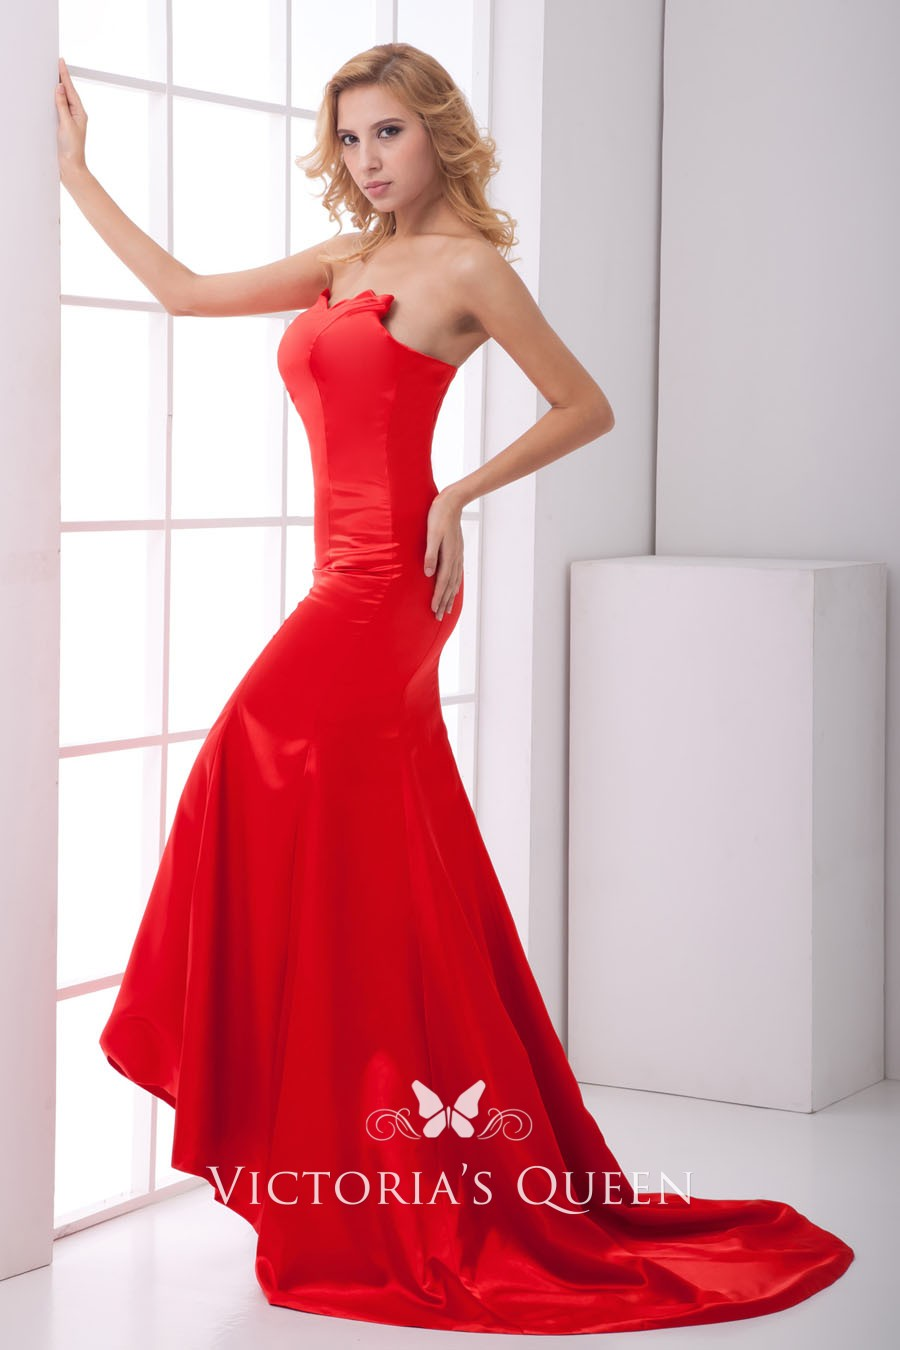 a280e79079bf Scalloped Sweetheart Strapless Red Satin Mermaid Long Prom Dress ...